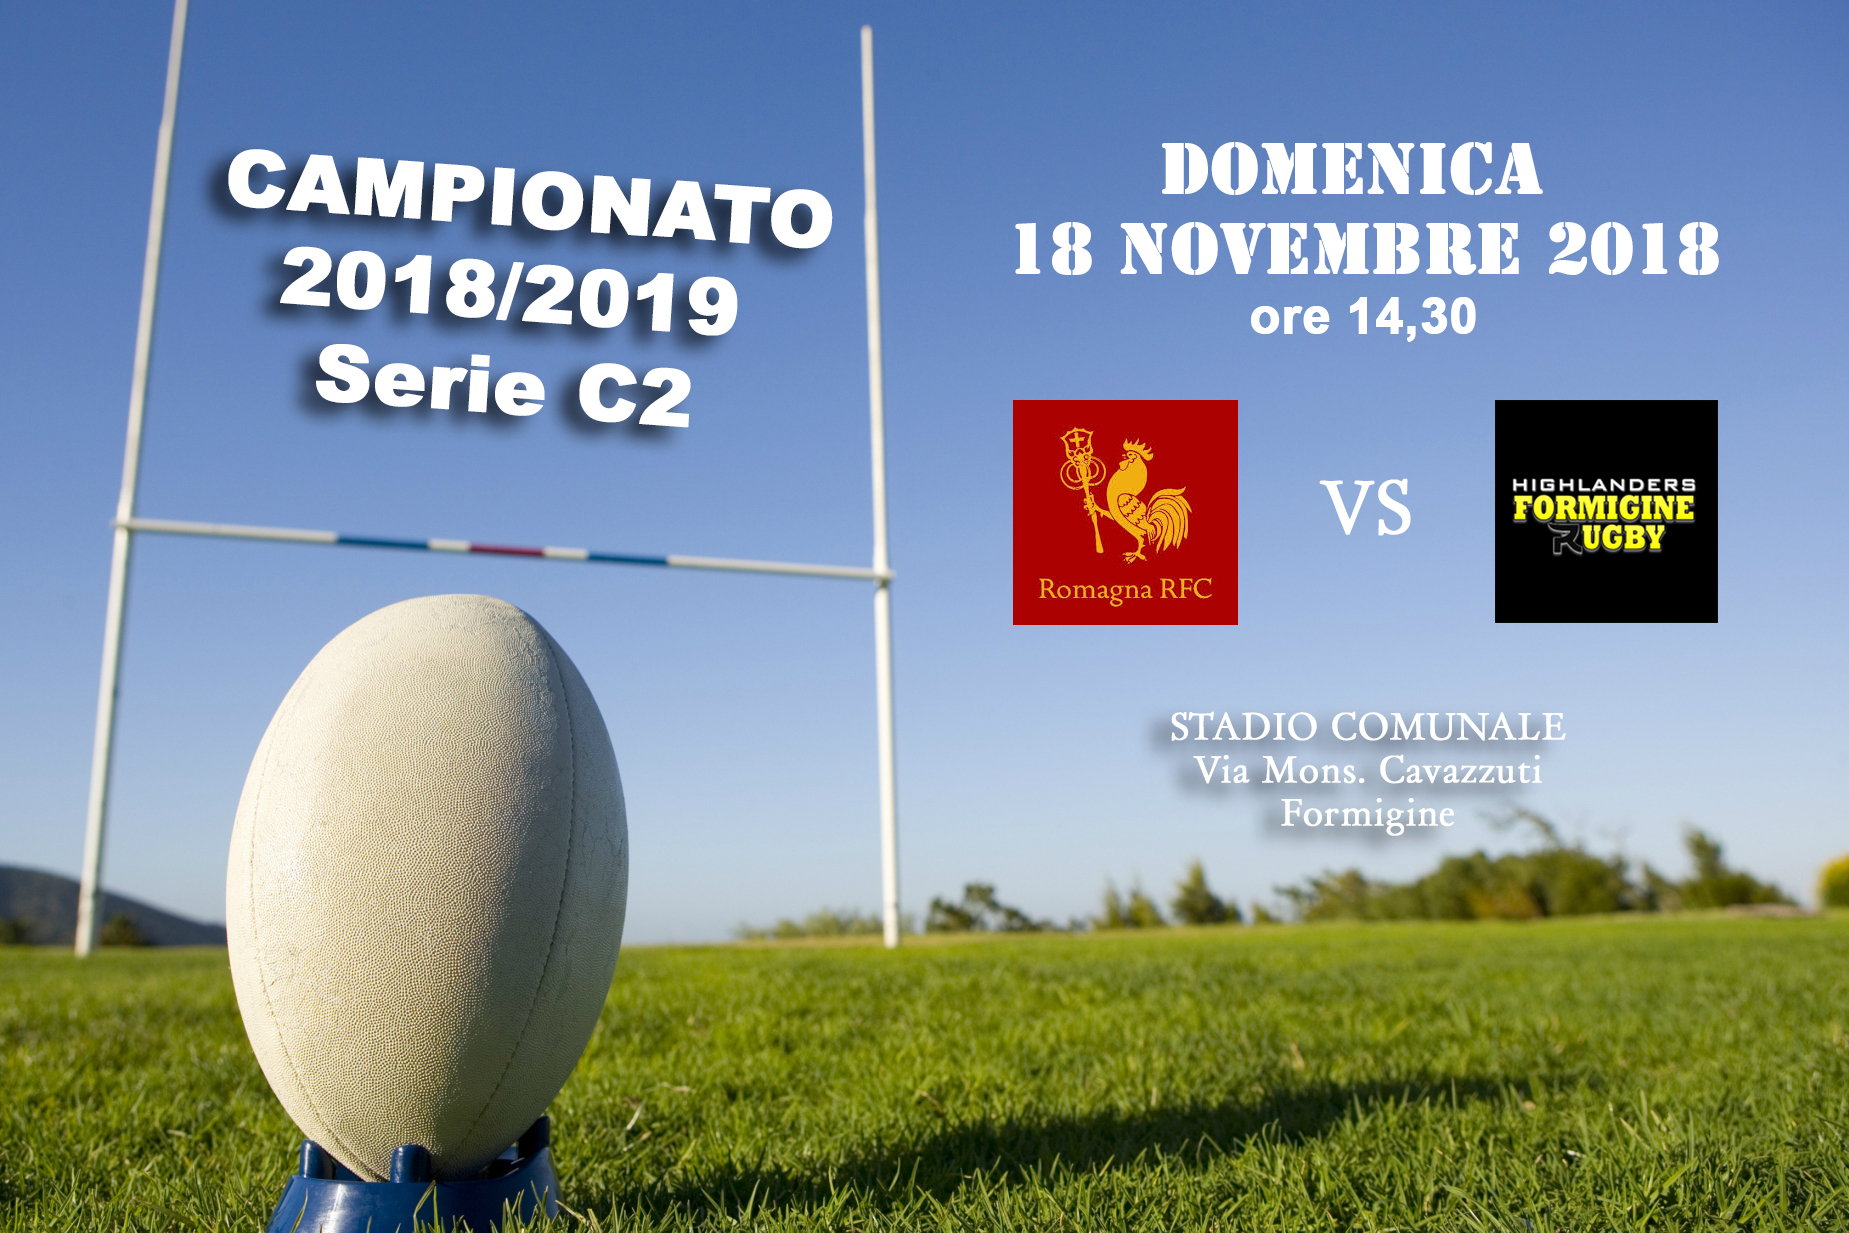 Campionato Rugby serie C2